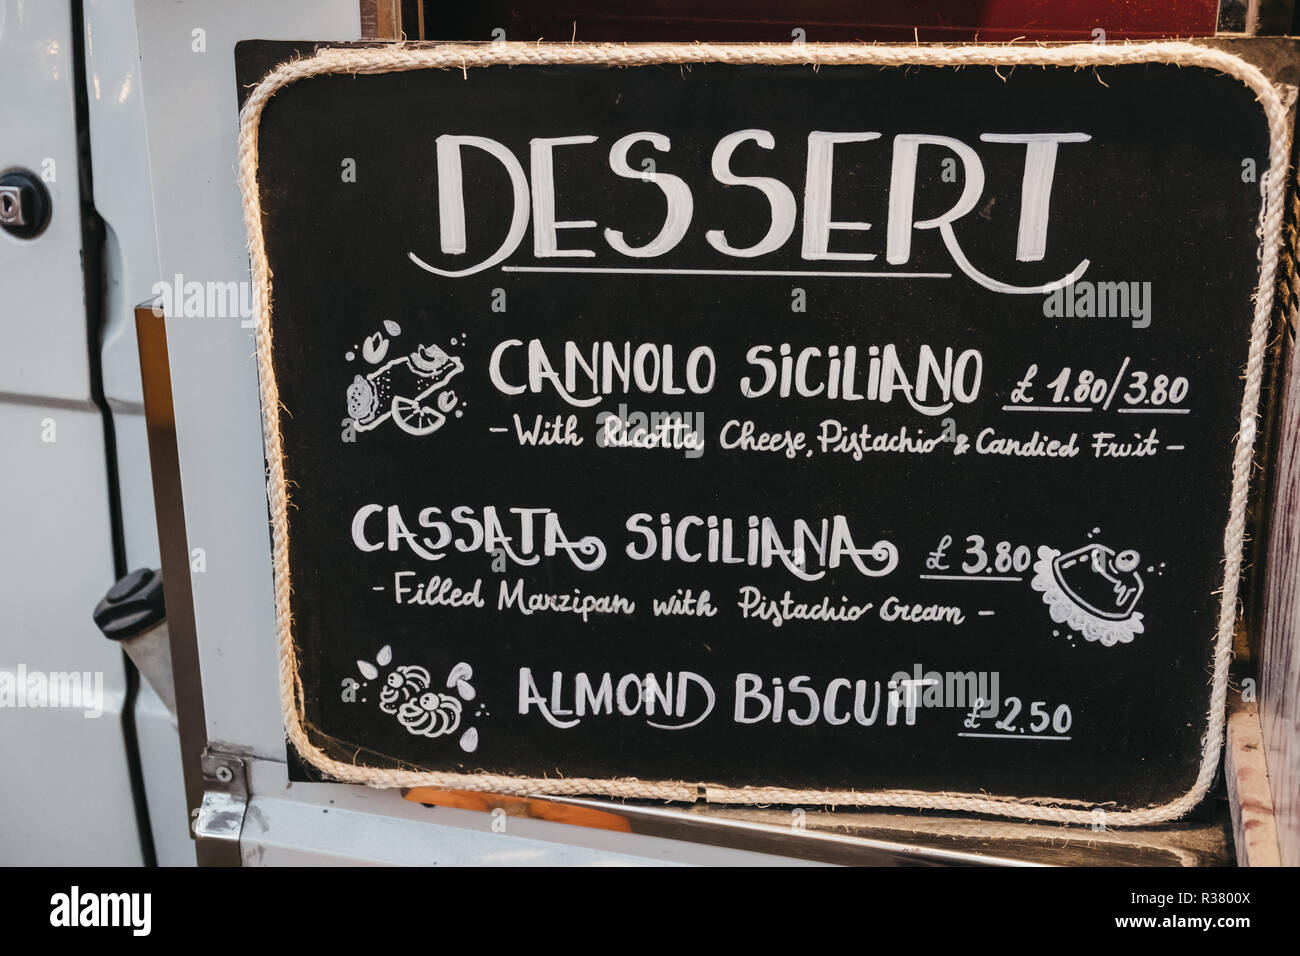 London,UK - November 2,2018: Dessert menu at Little Sicily stand in Mercato Metropolitano, the first sustainable community market in London focused on - Stock Image